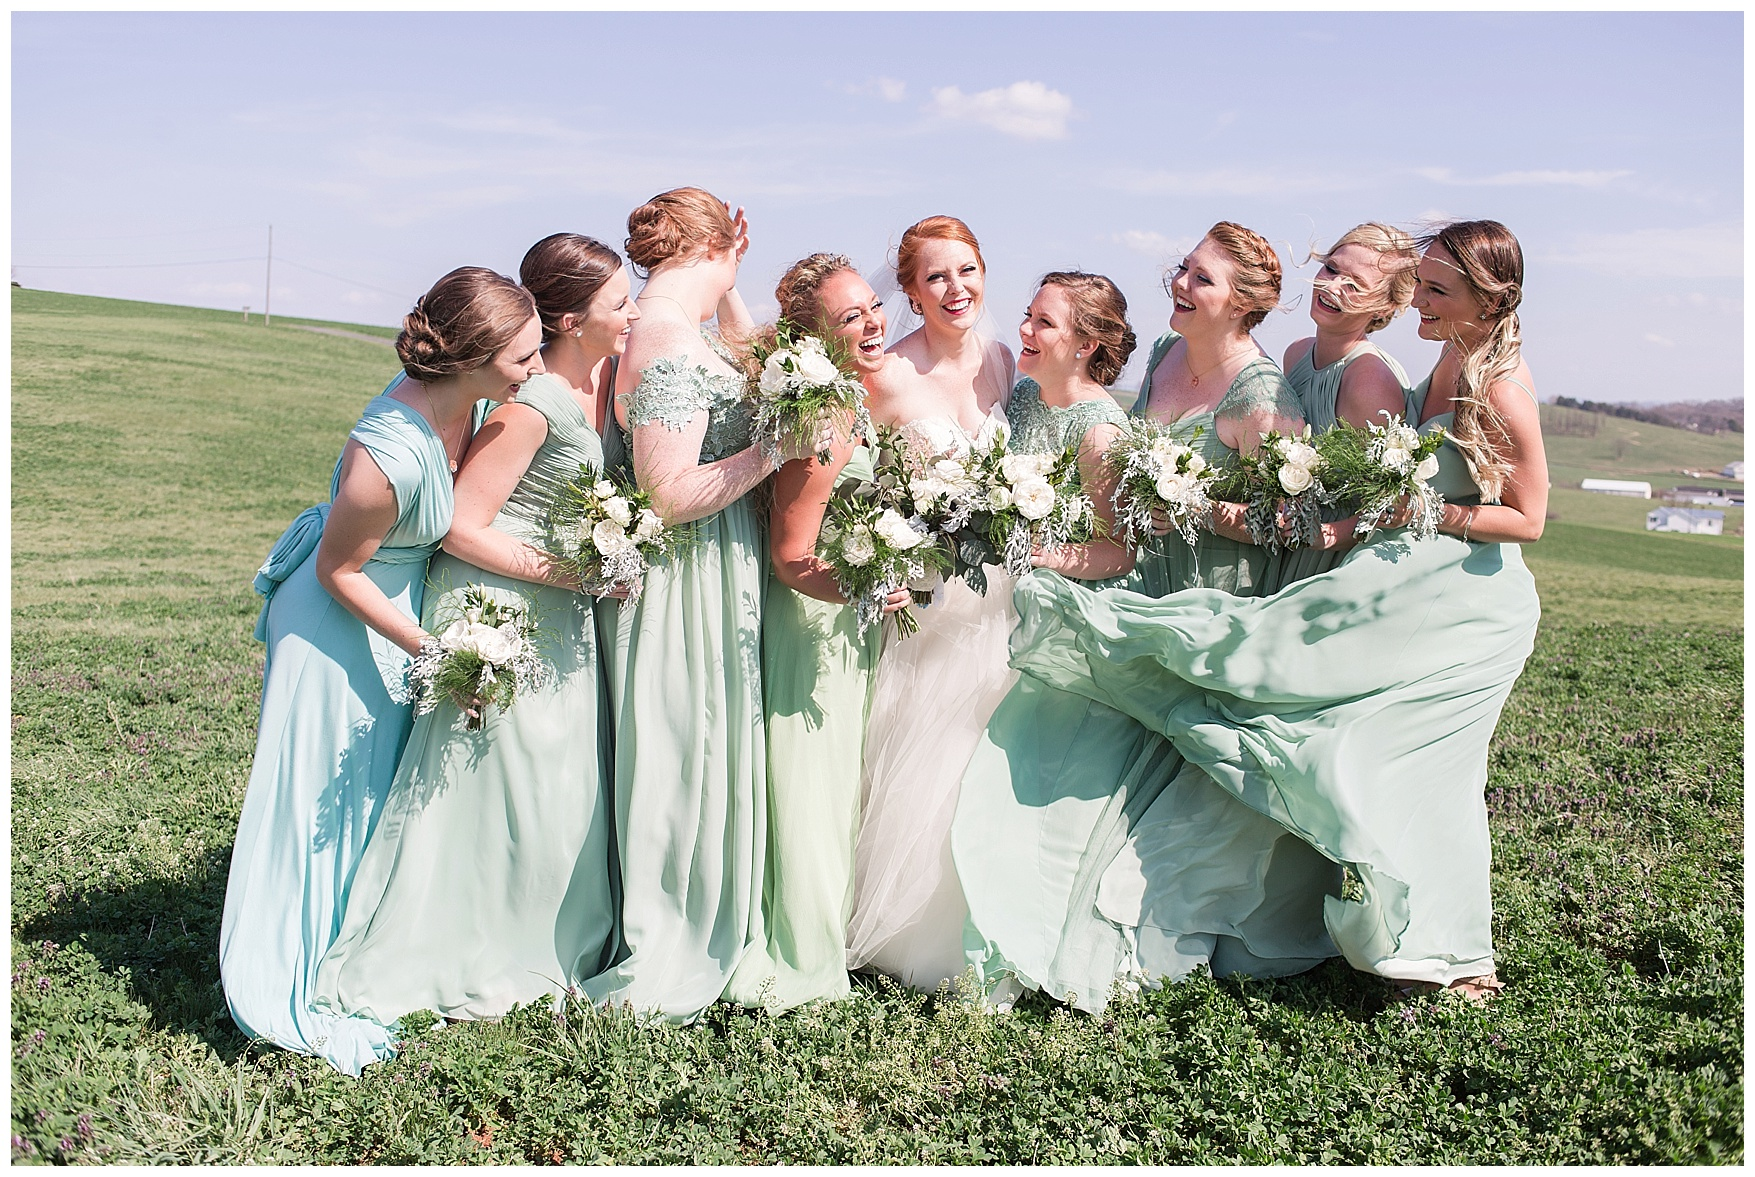 On the Sunny Slope Farm Wedding  || Harrisonburg, Virginia Wedding Photographer || Lynchburg VA Photographer